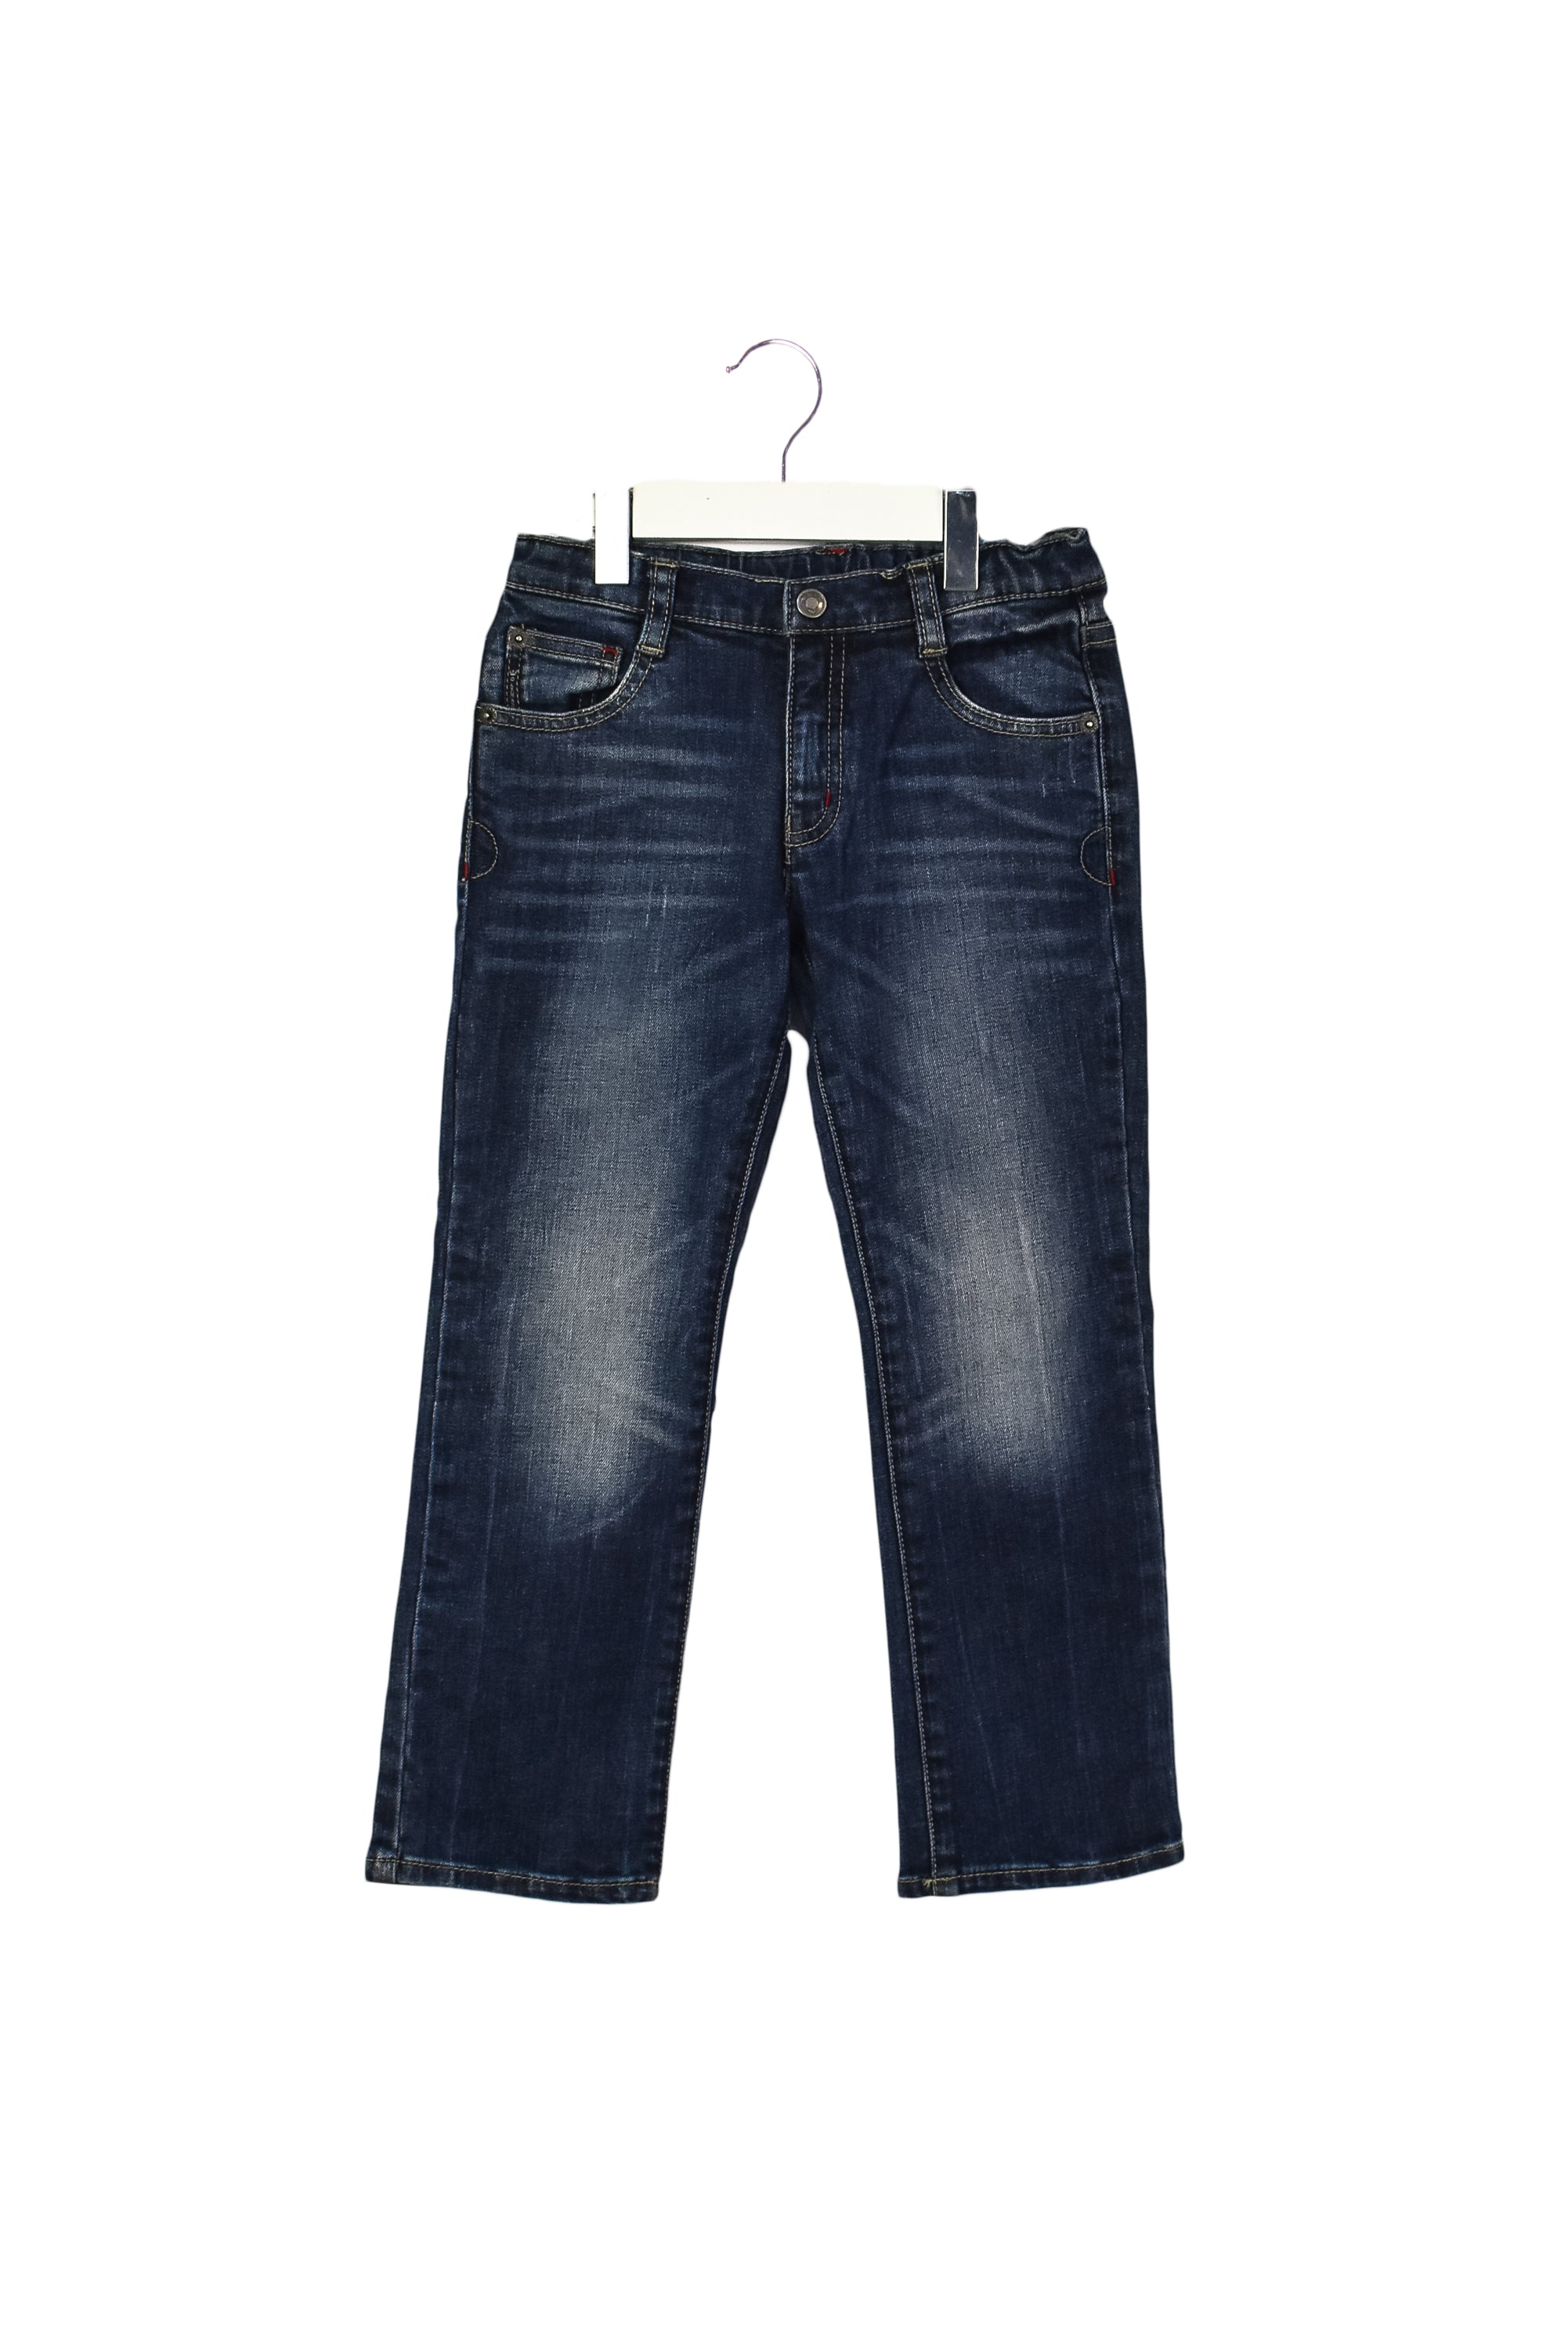 10035240 Armani Kids~Jeans 6T at Retykle